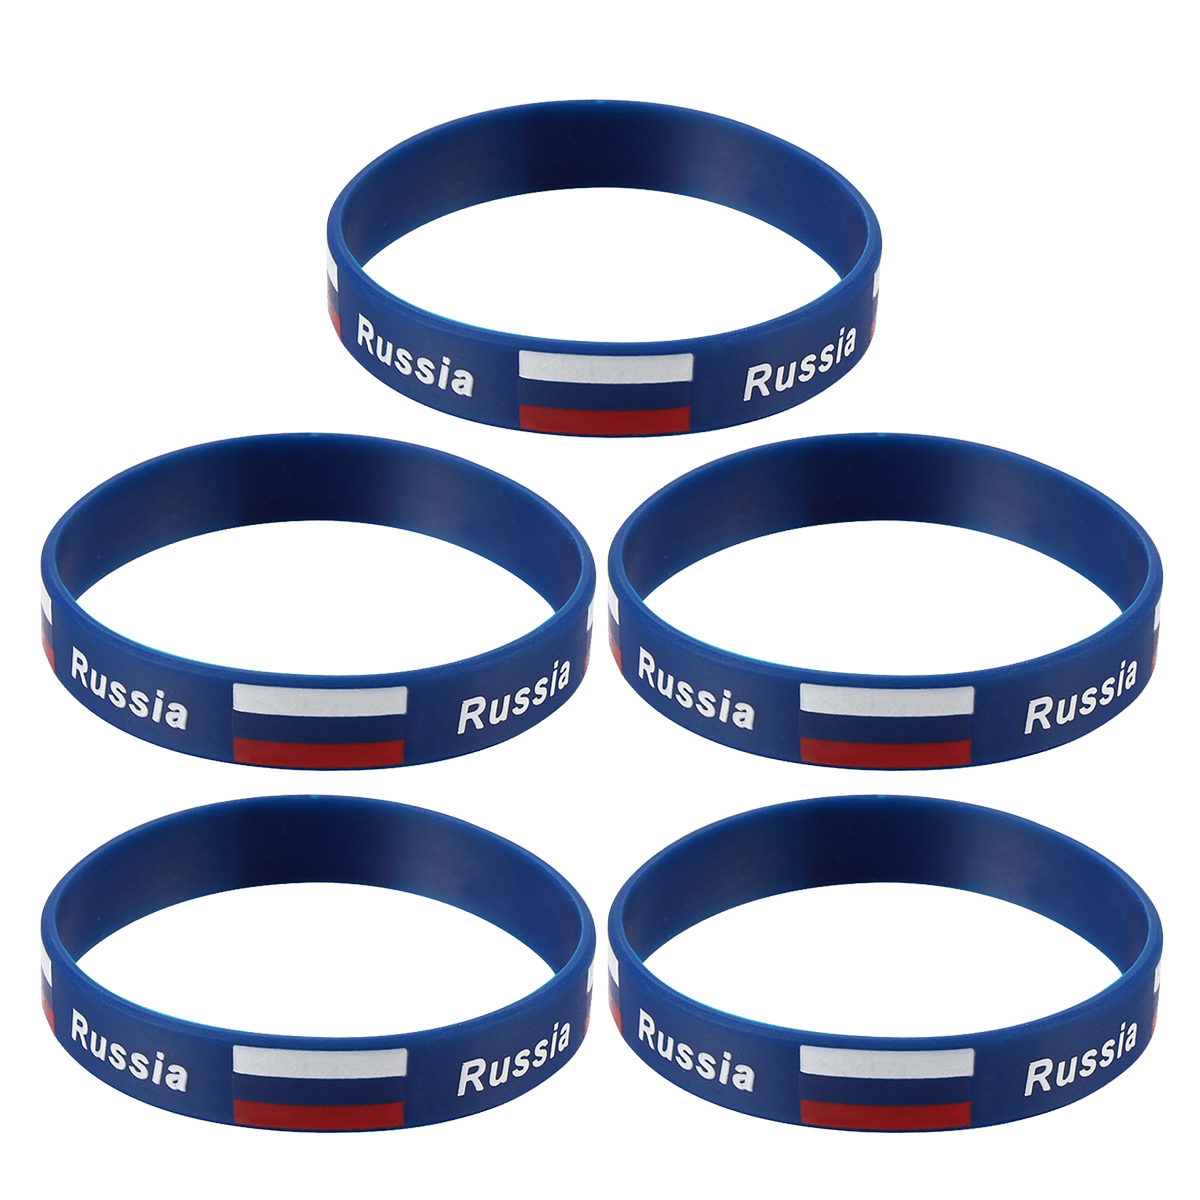 5pcs Country Flag Printed Wristband Chic Silicone Sports Bracelet Hand Ring Wristband For Sports Game Football Match (Russia)